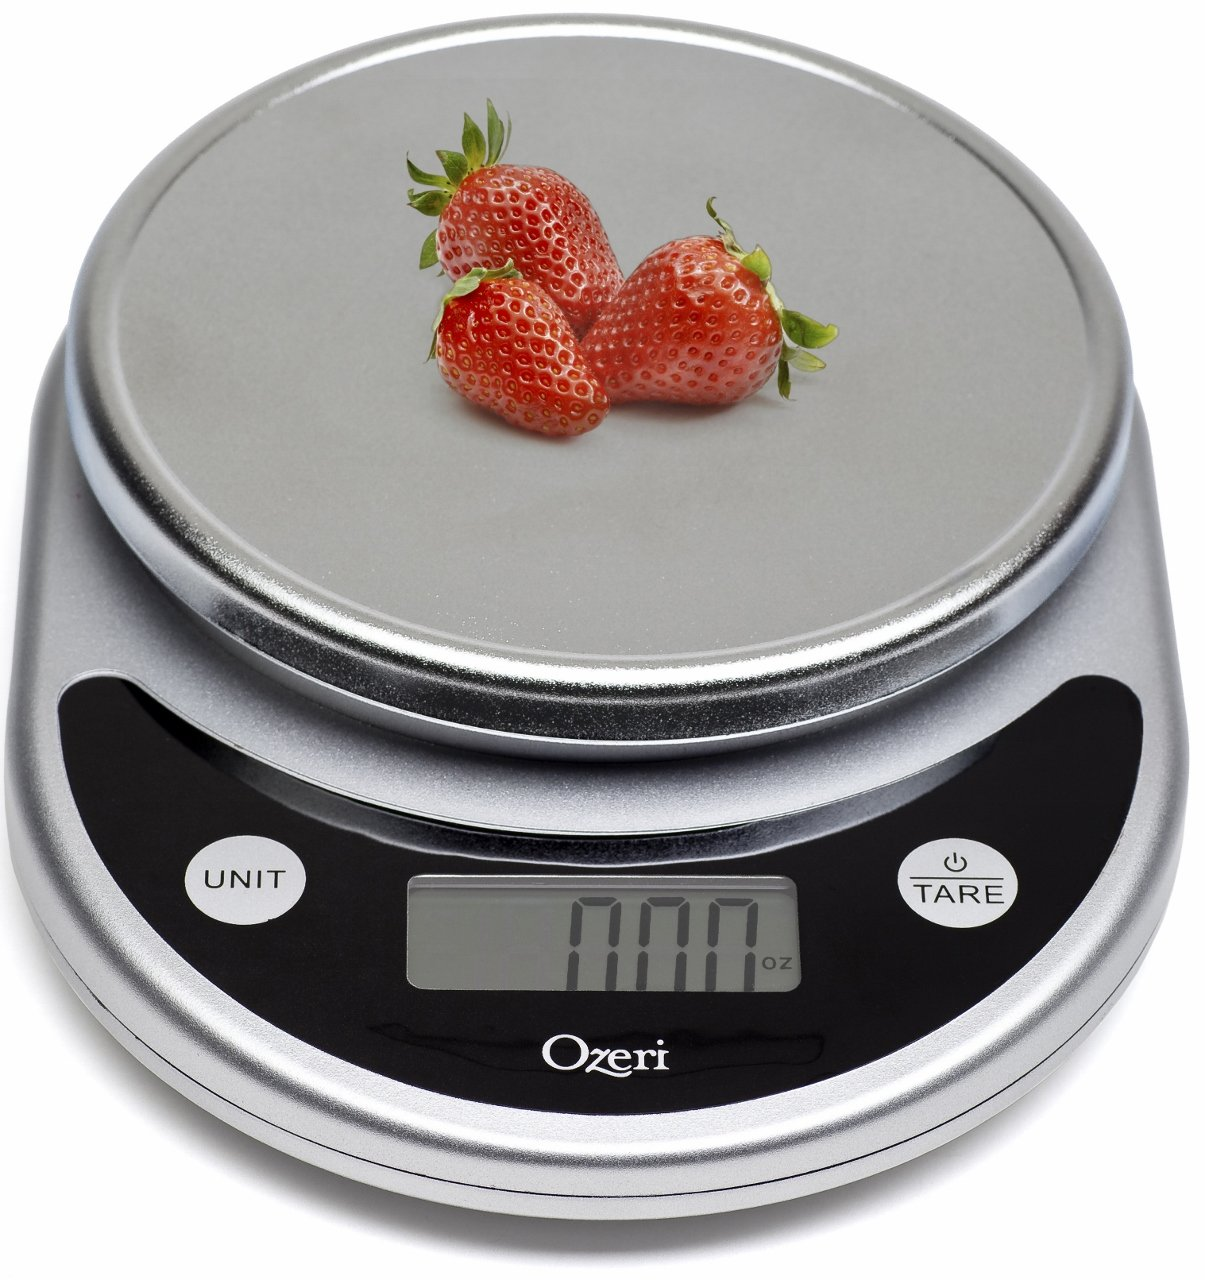 Digital Multifunction Kitchen and Food Scale,